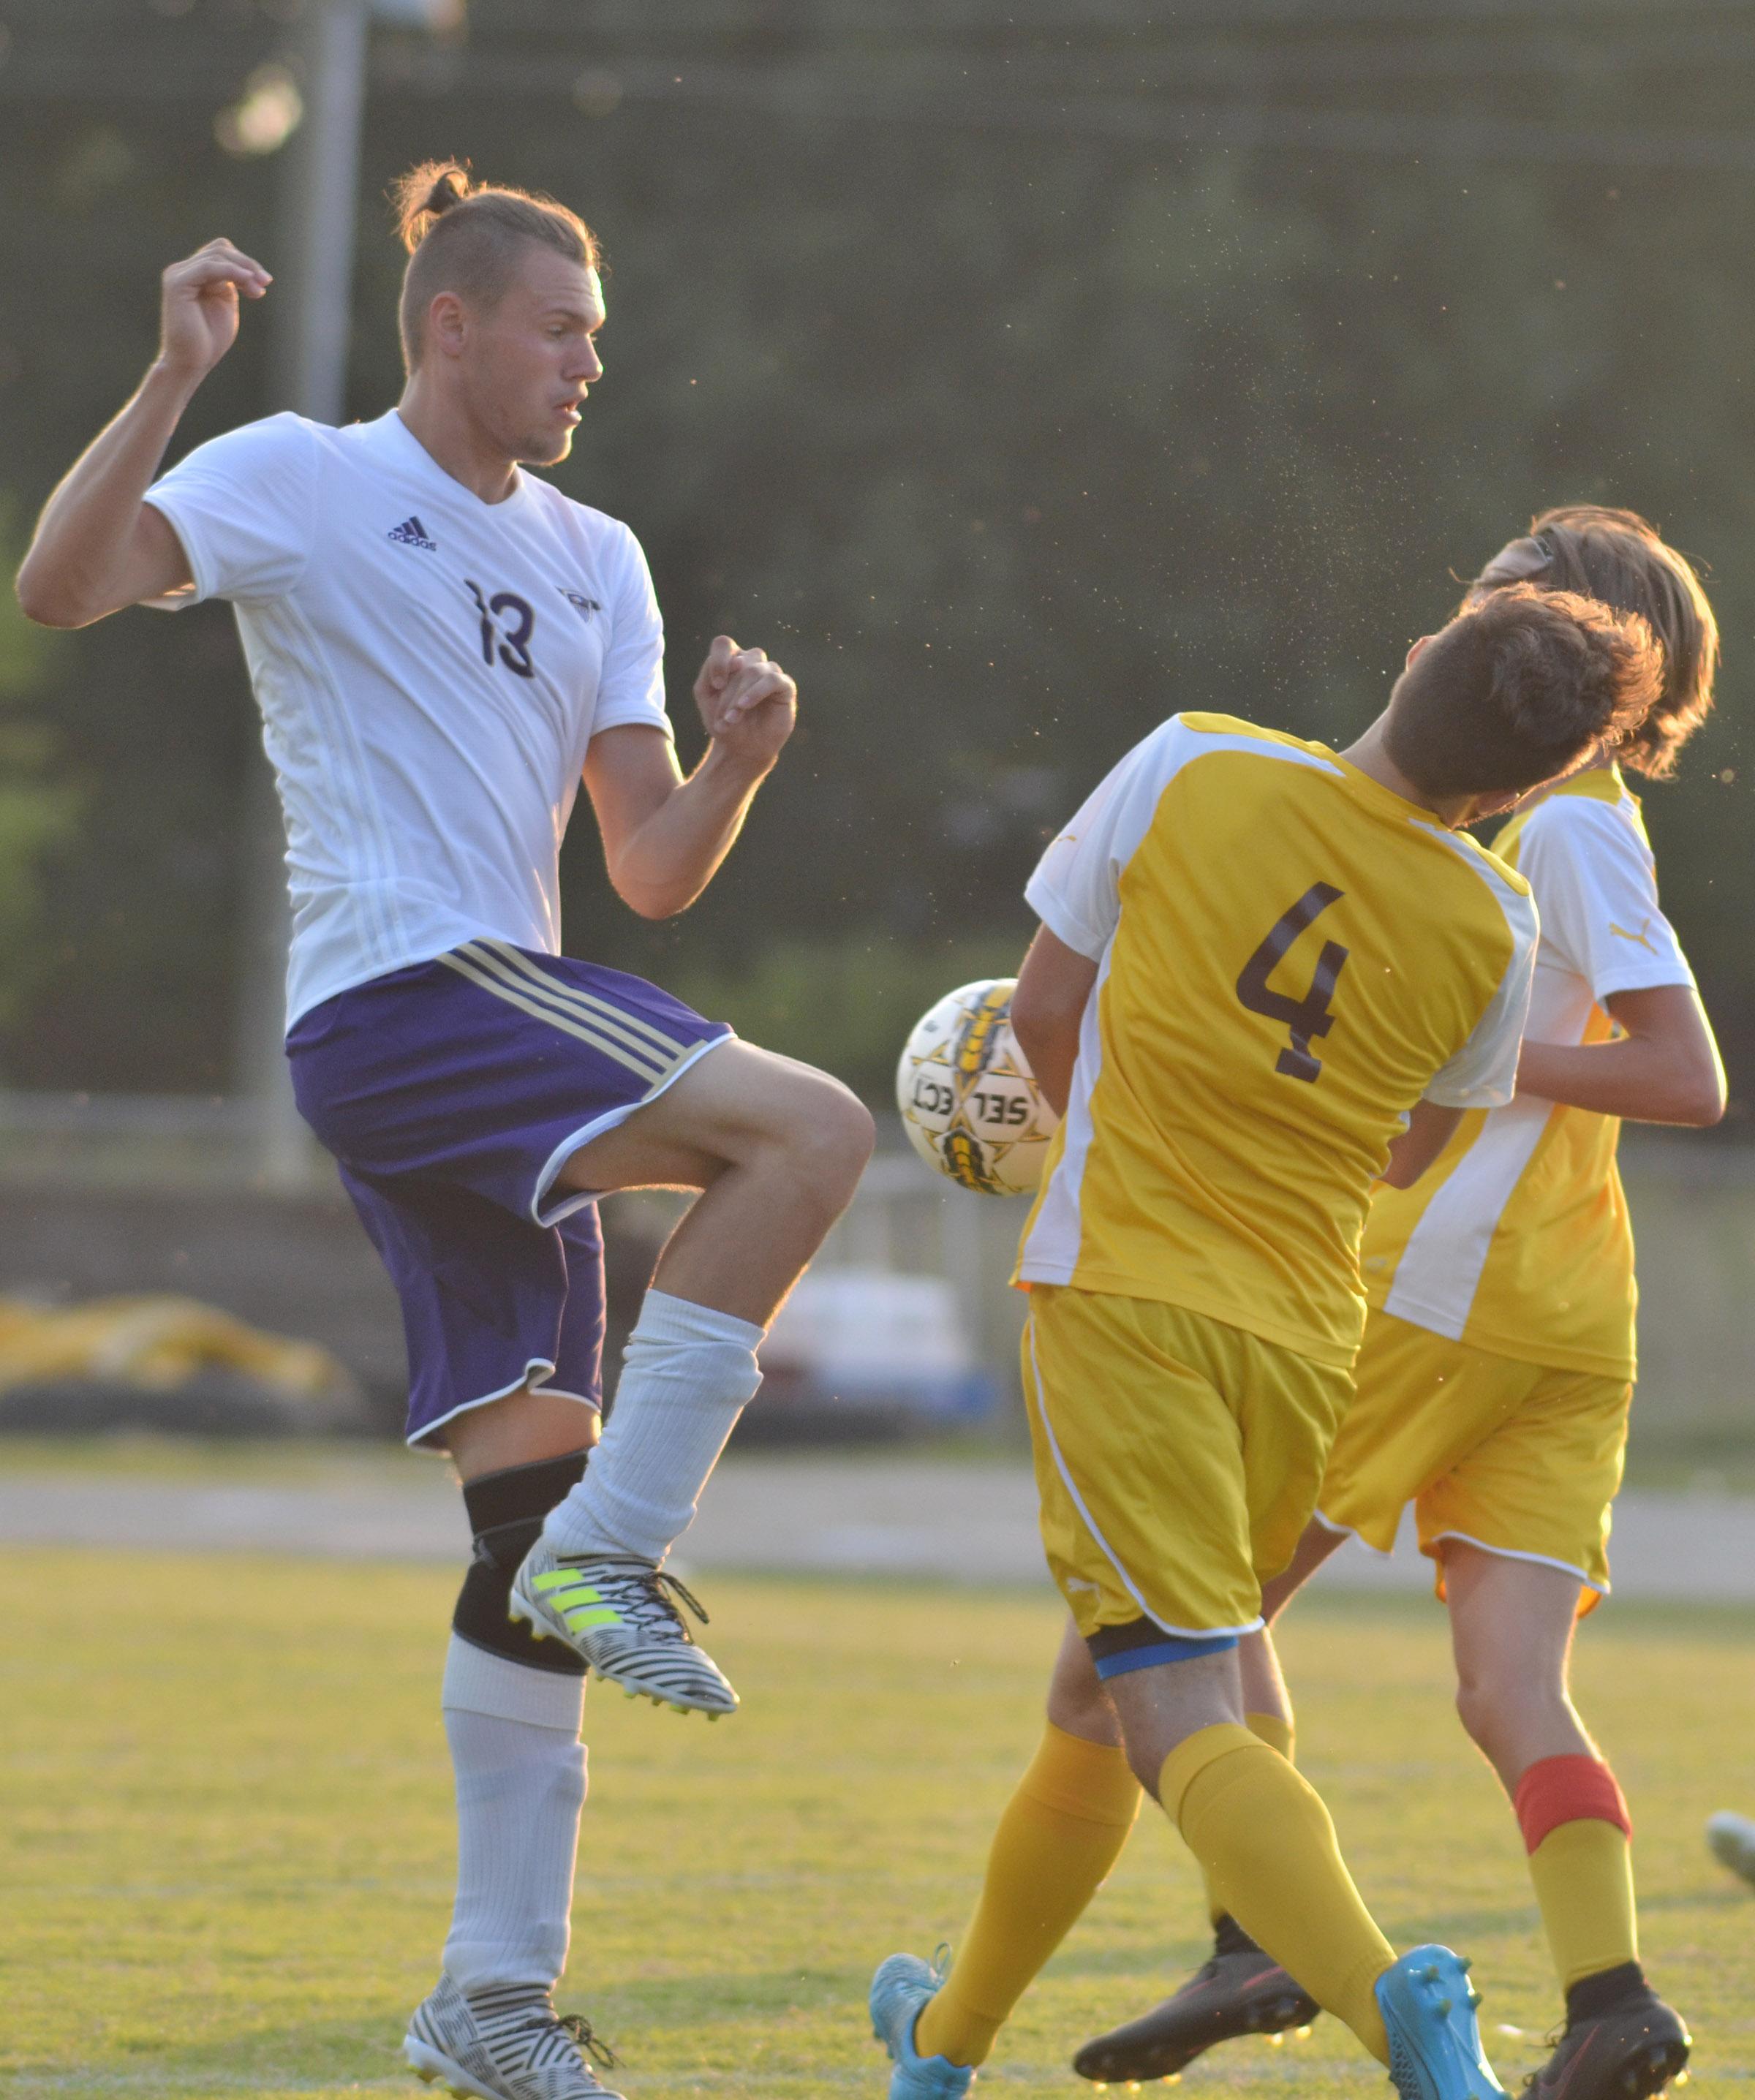 CHS senior Logan Cole kicks the ball.